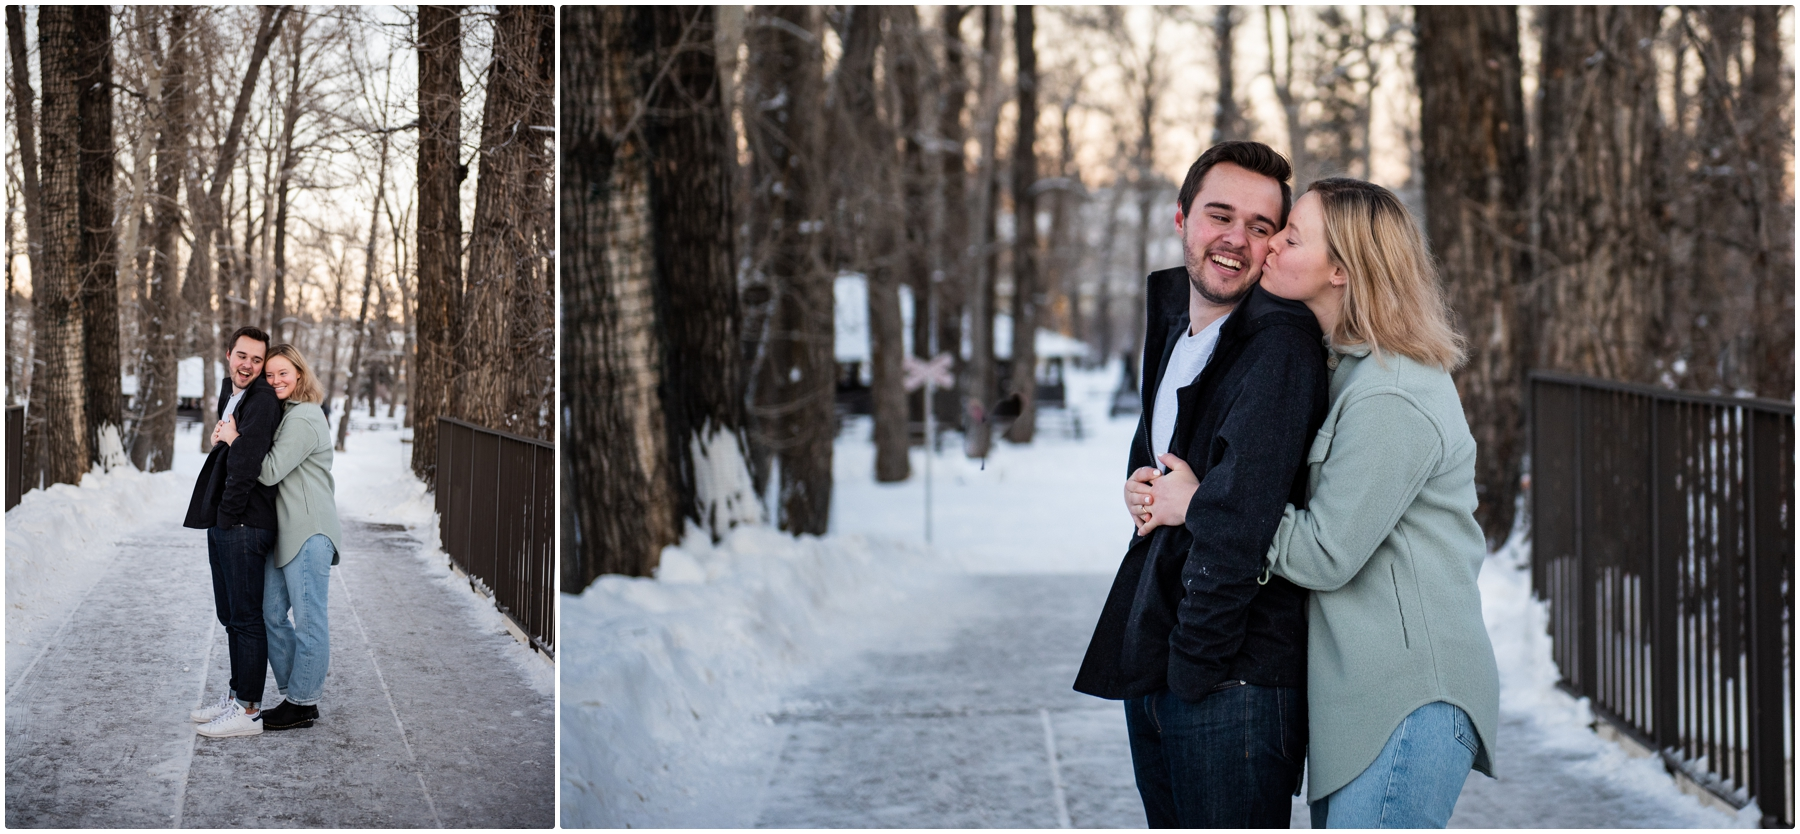 Calgary Bowness Park Skating Engagement Session